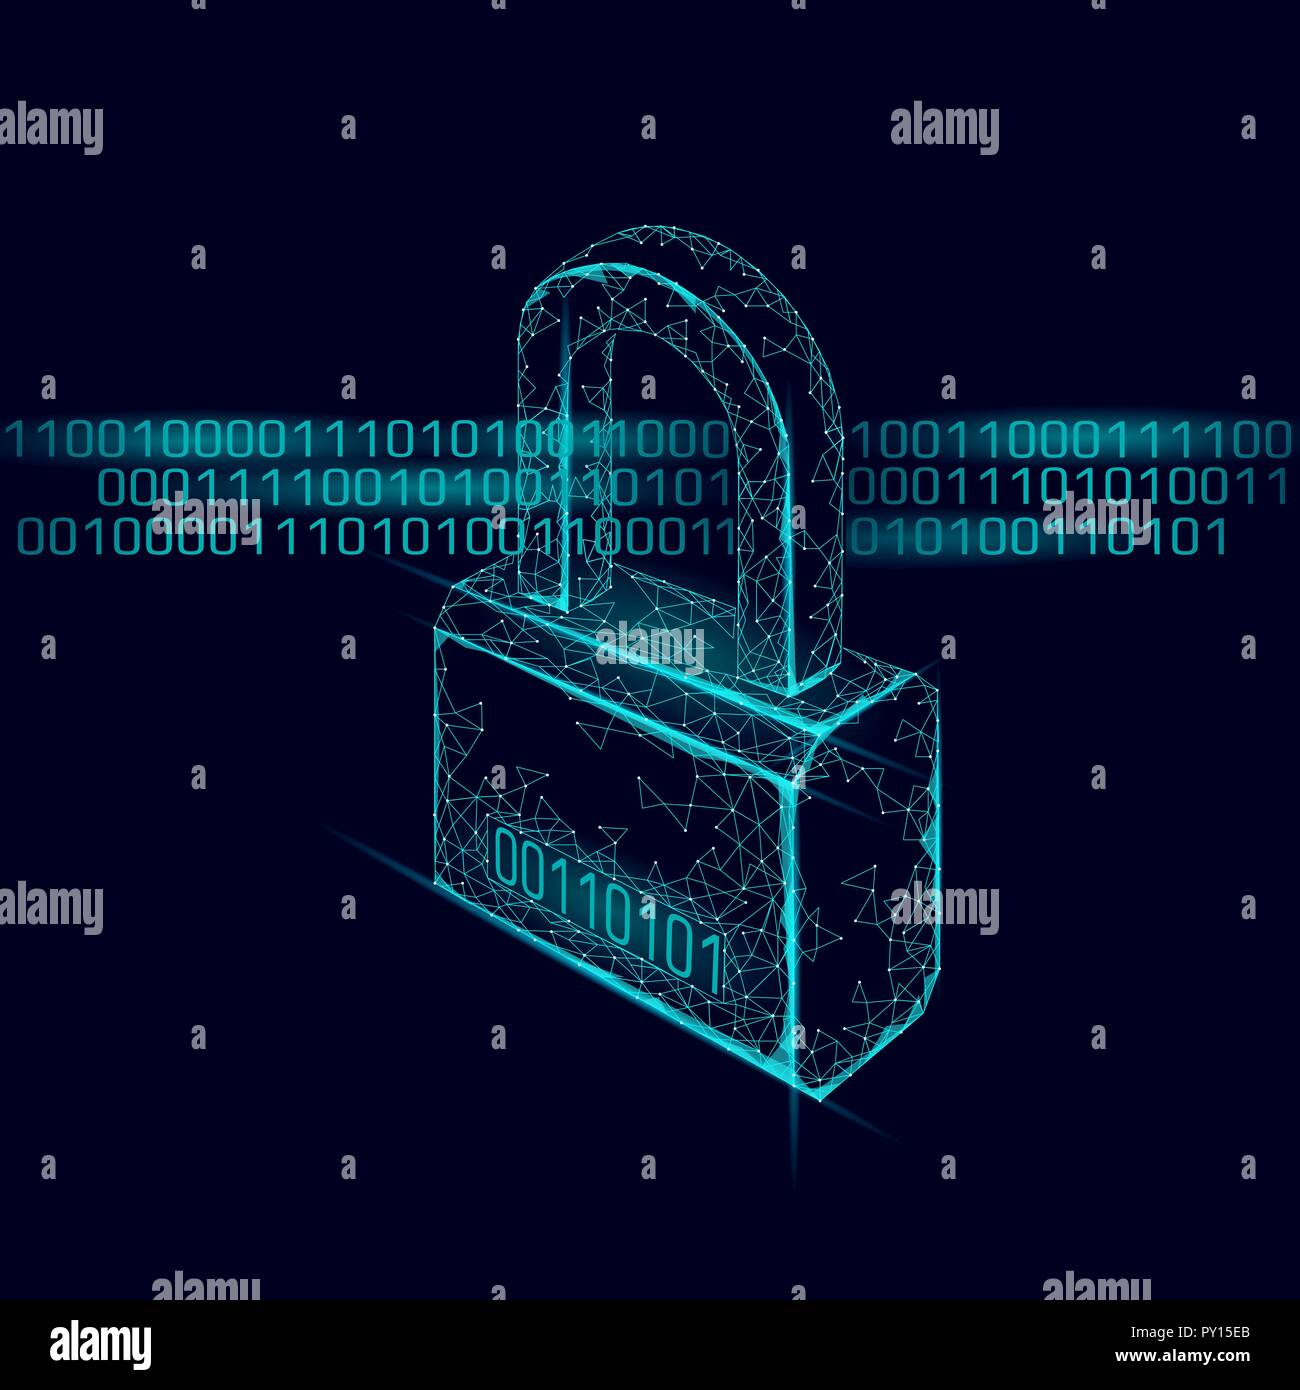 Cyber safety padlock on data mass. Internet security lock information privacy low poly polygonal future innovation technology network business concept blue vector illustration art - Stock Image